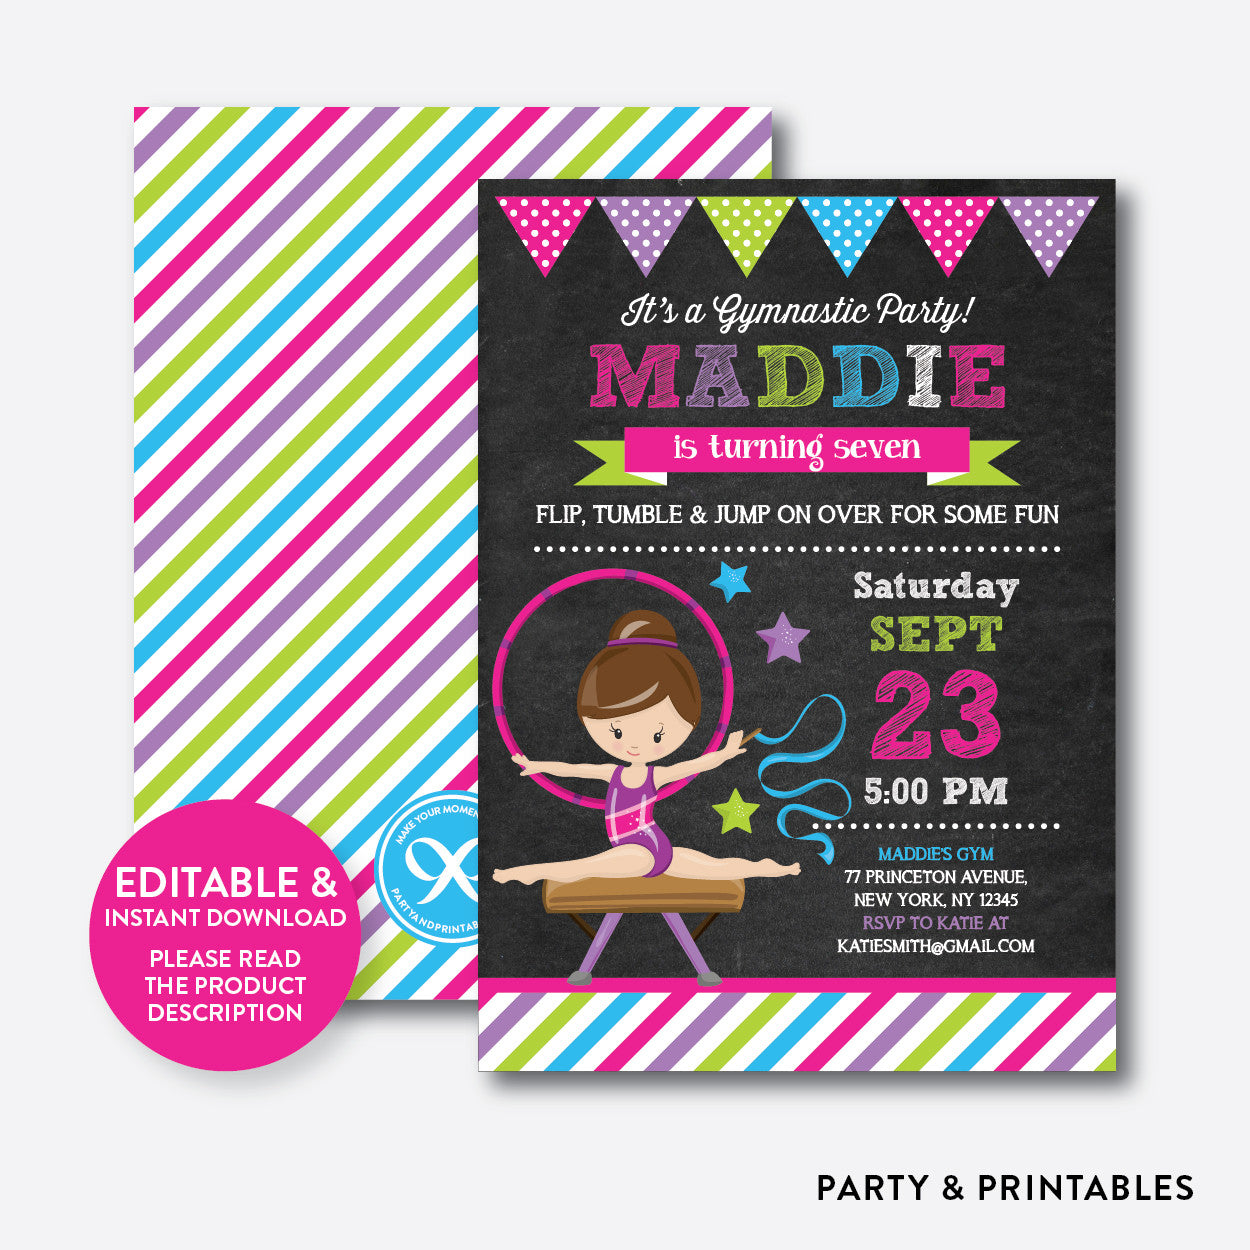 Gymnastics Chalkboard Kids Birthday Invitation / Editable / Instant Download (CKB.467C), invitation - Party and Printables